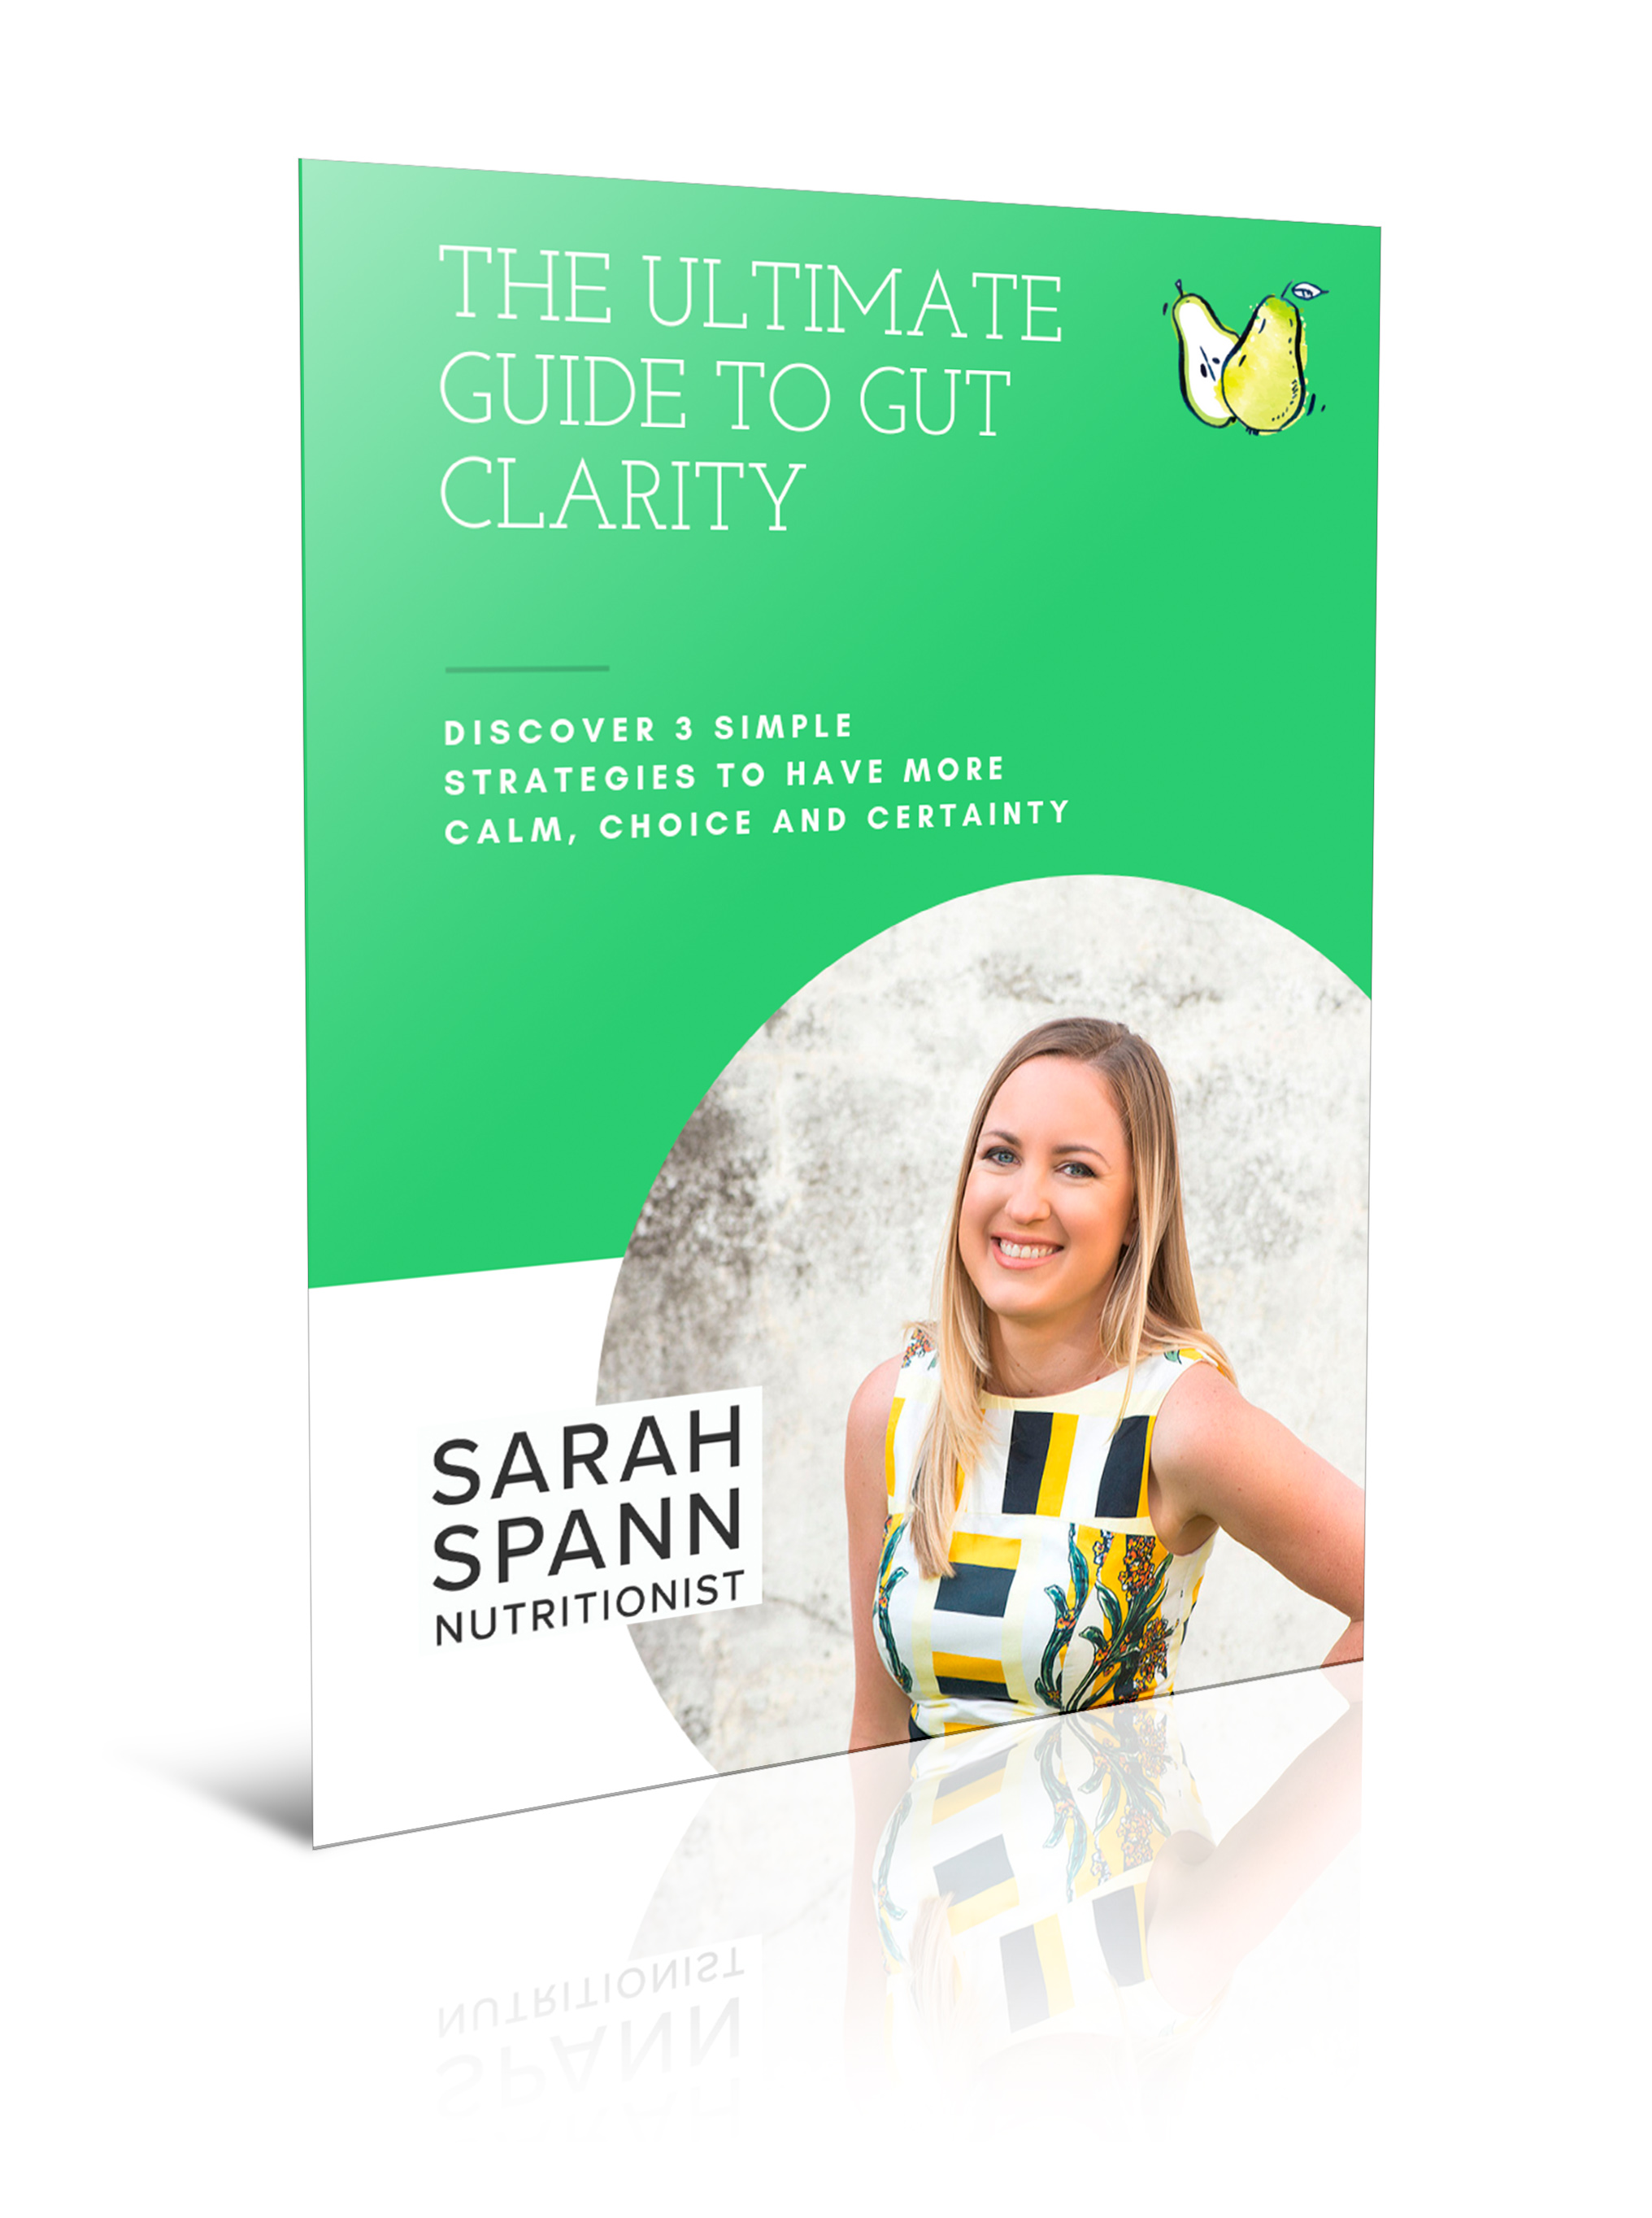 Click here to download your free guidebook